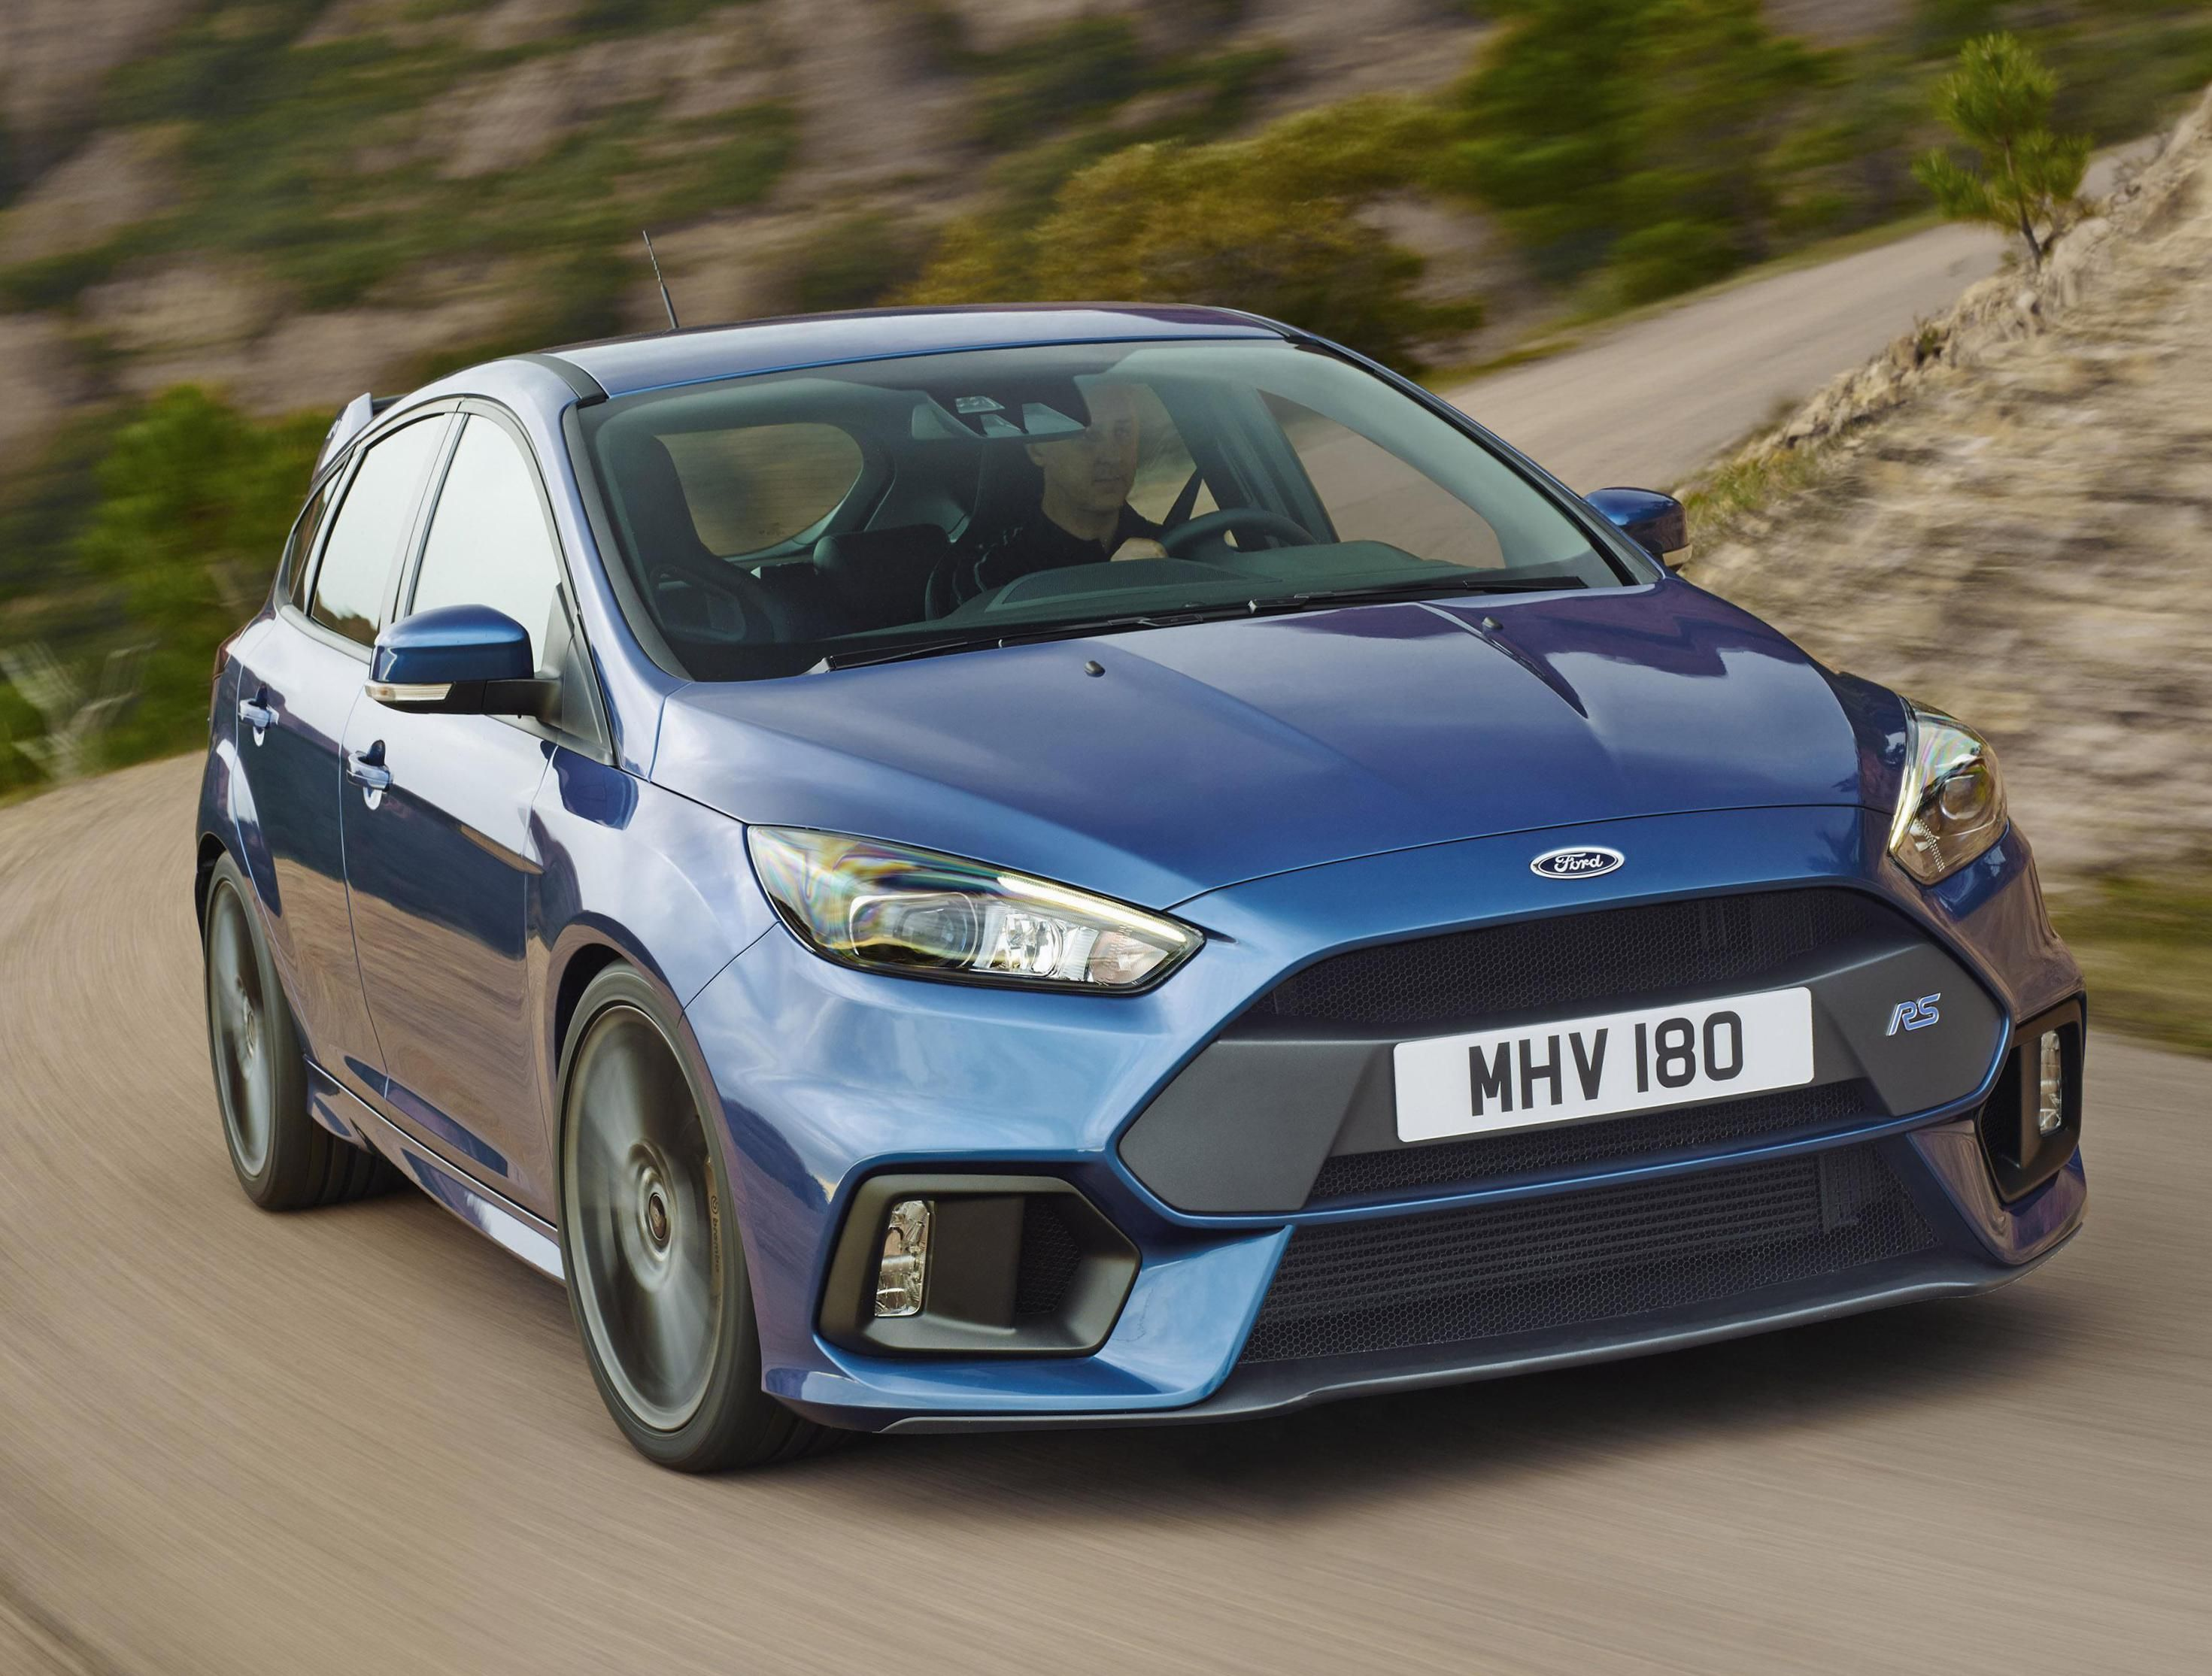 Ford Focus Rs Photos And Specs Photo Focus Rs Ford Reviews And 22 Perfect Photos Of Ford Focus Rs Ford Focus Ford Focus Rs New Ford Focus